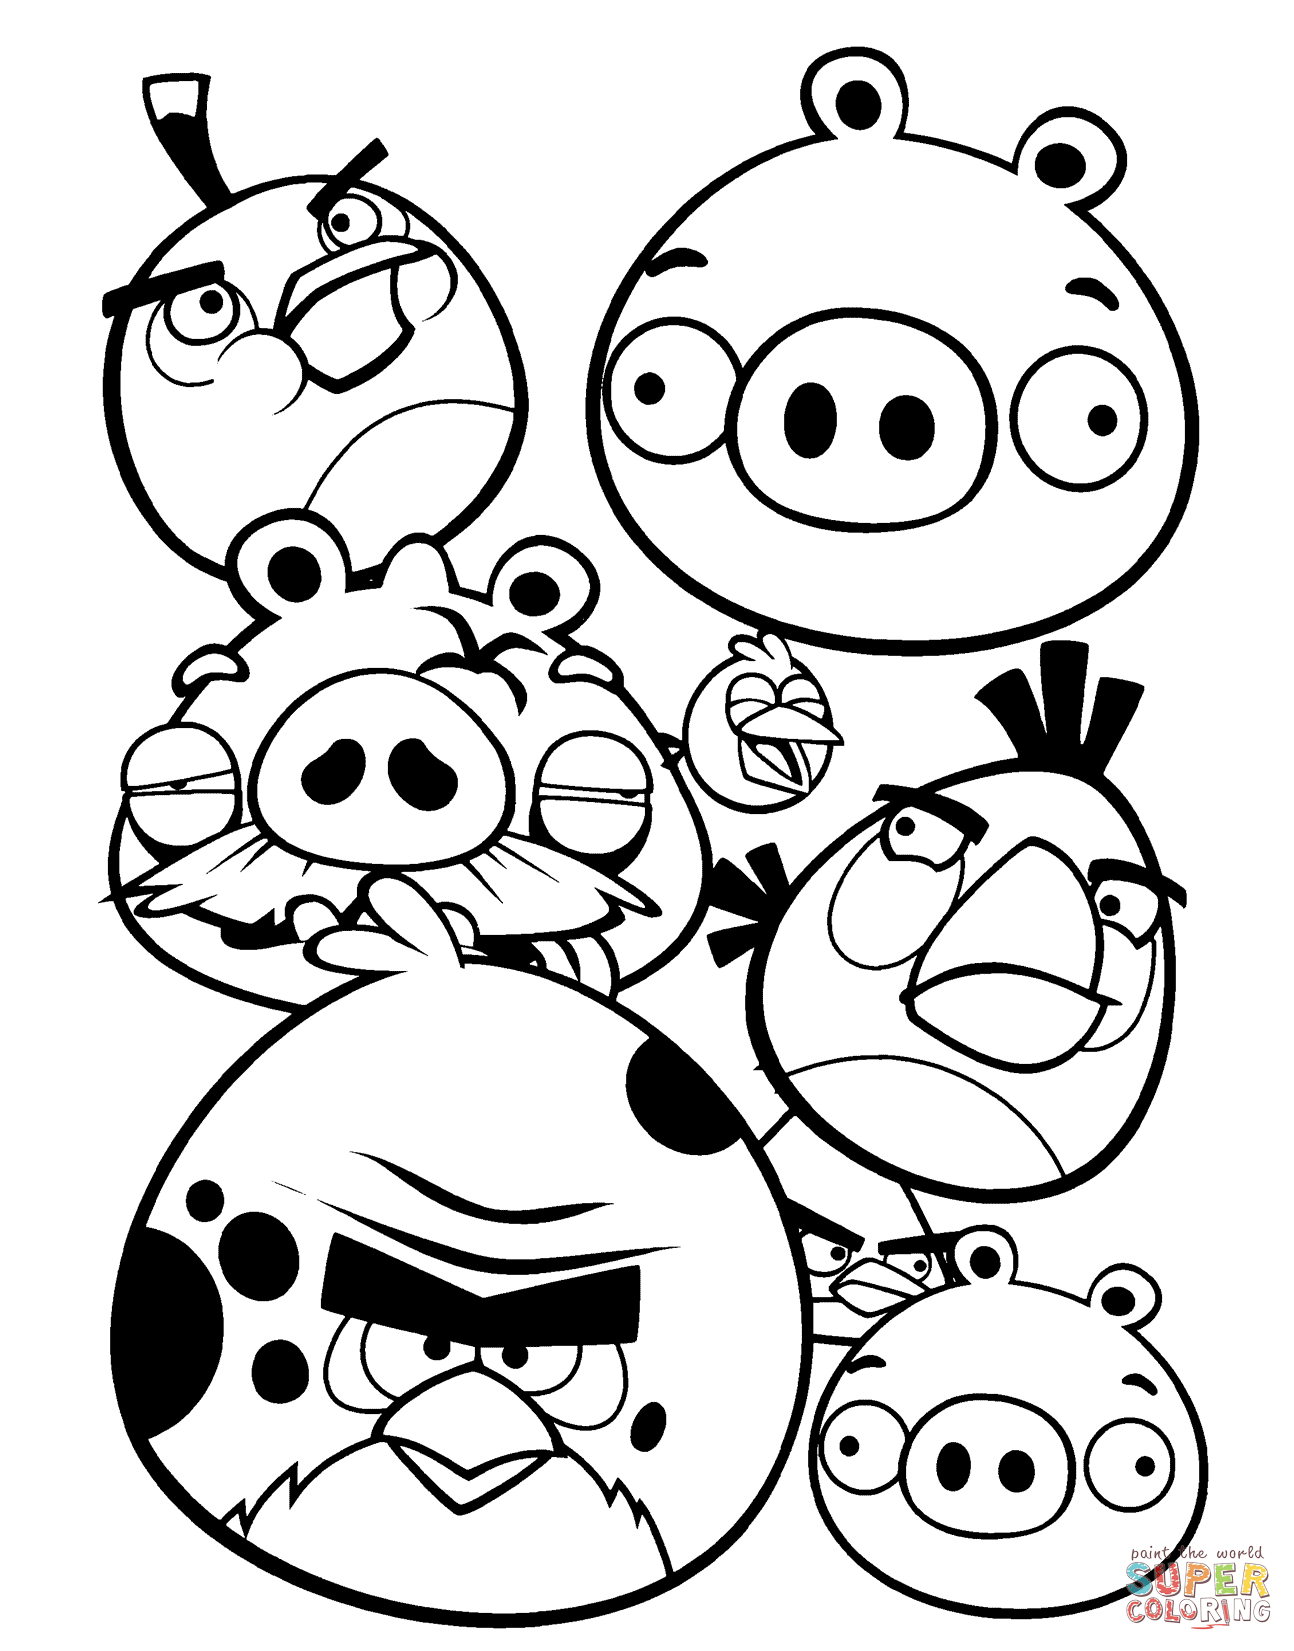 Star Wars Angry Birds Pigs Coloring Pages 2